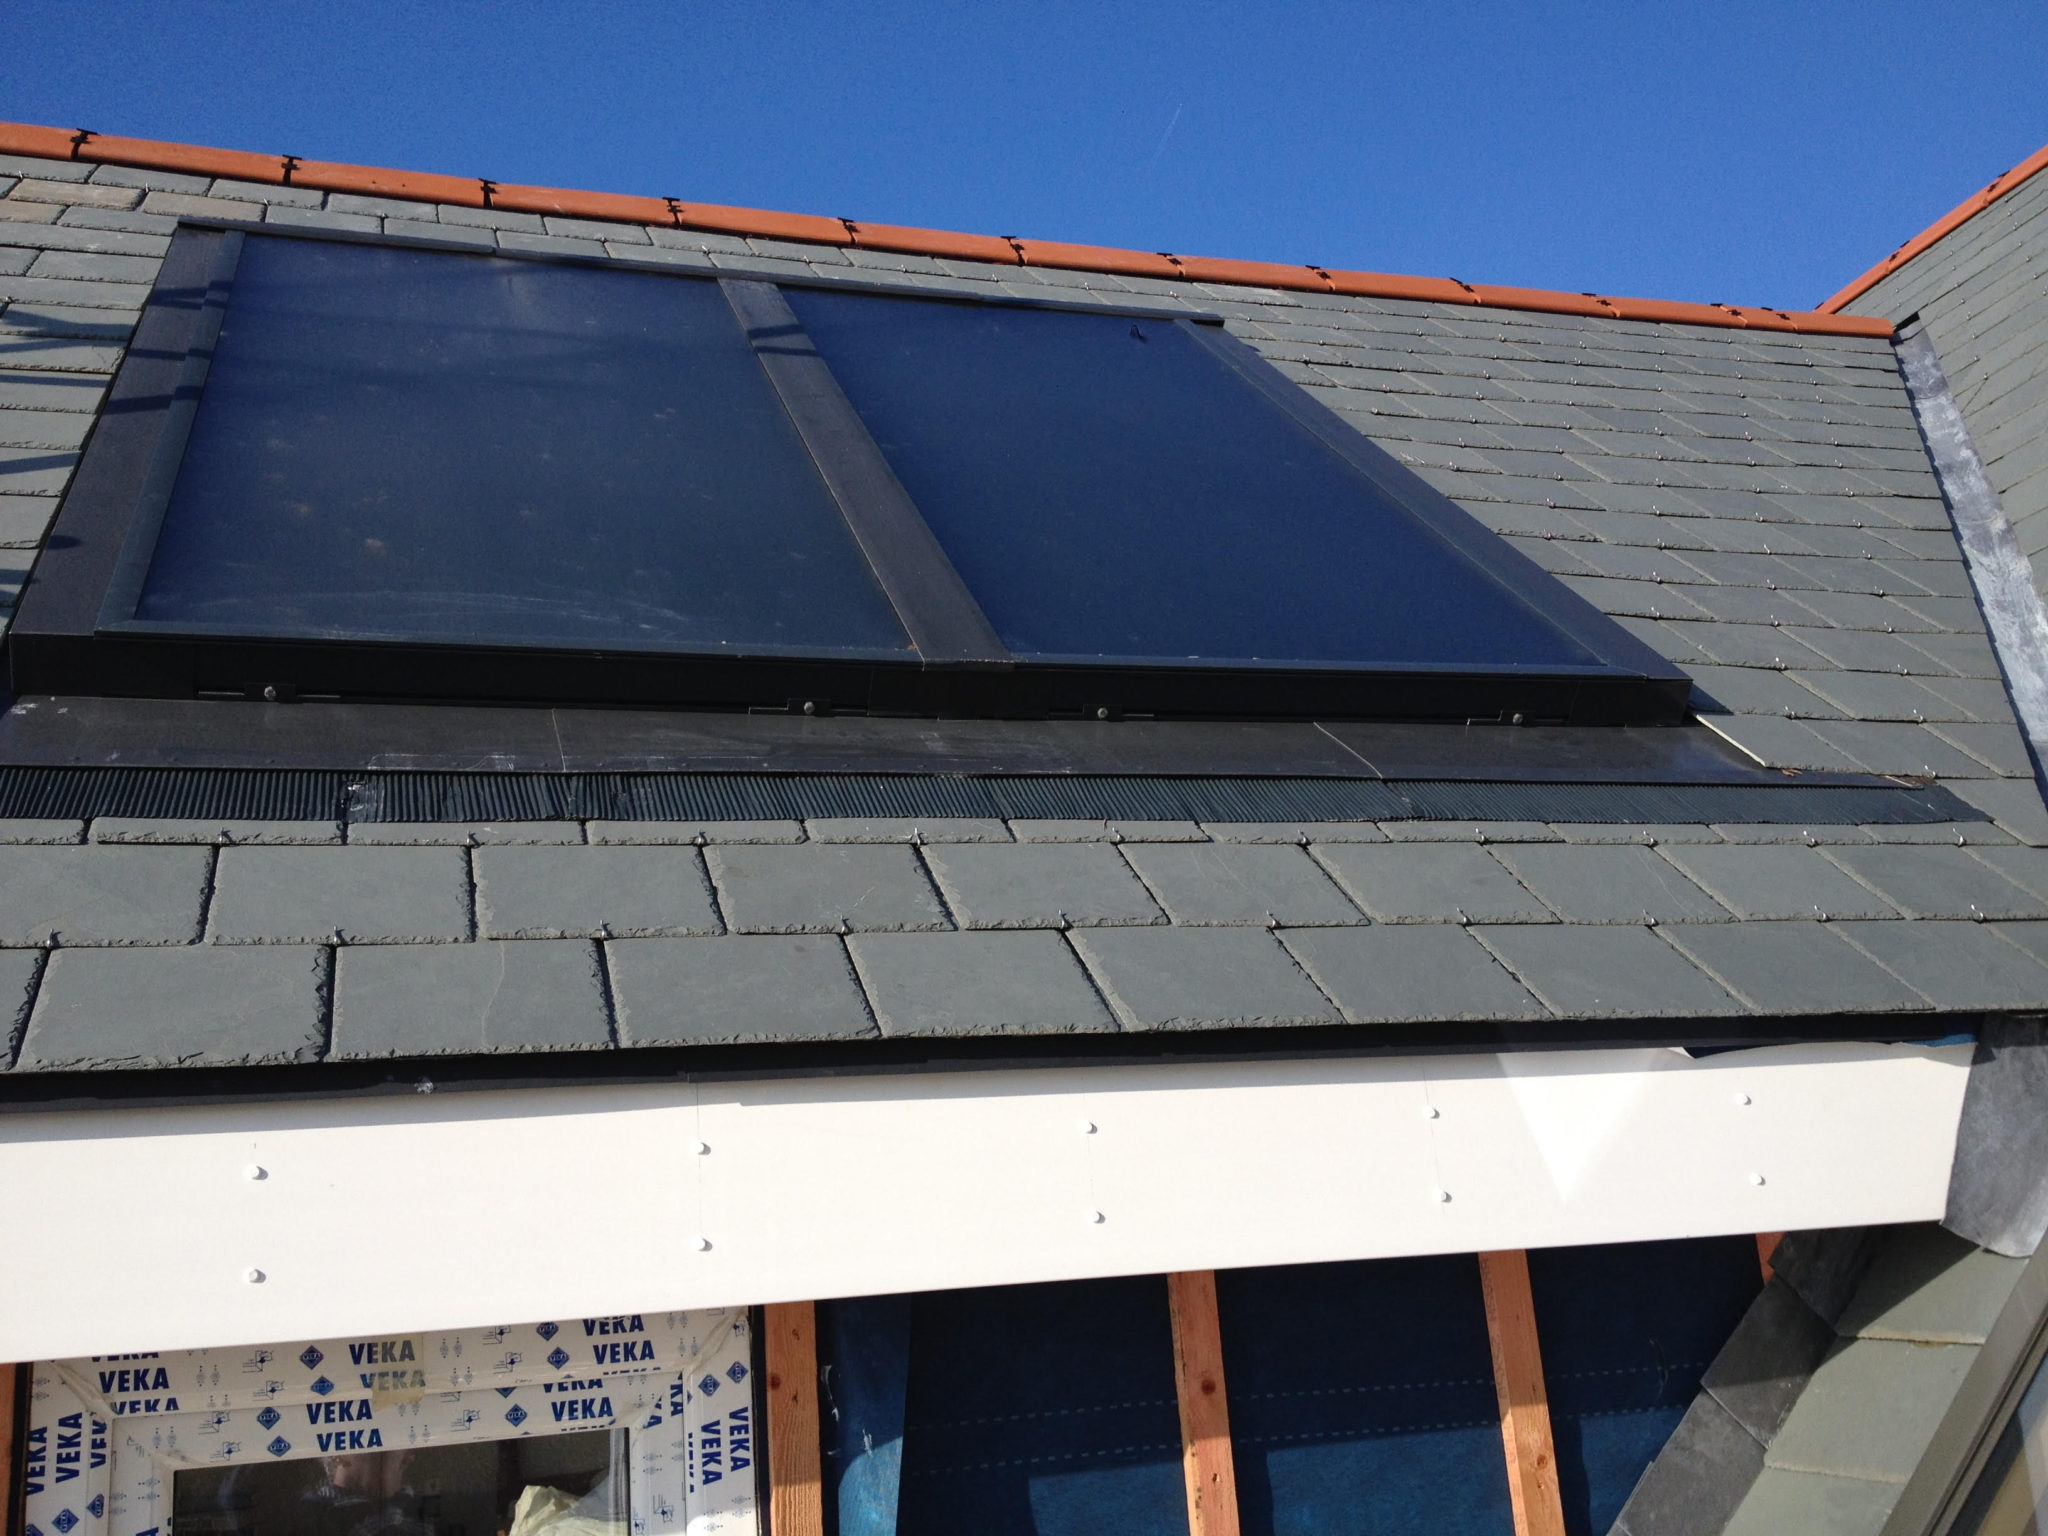 An image of GreenGenUK's solar thermal installation in Praa Sands.